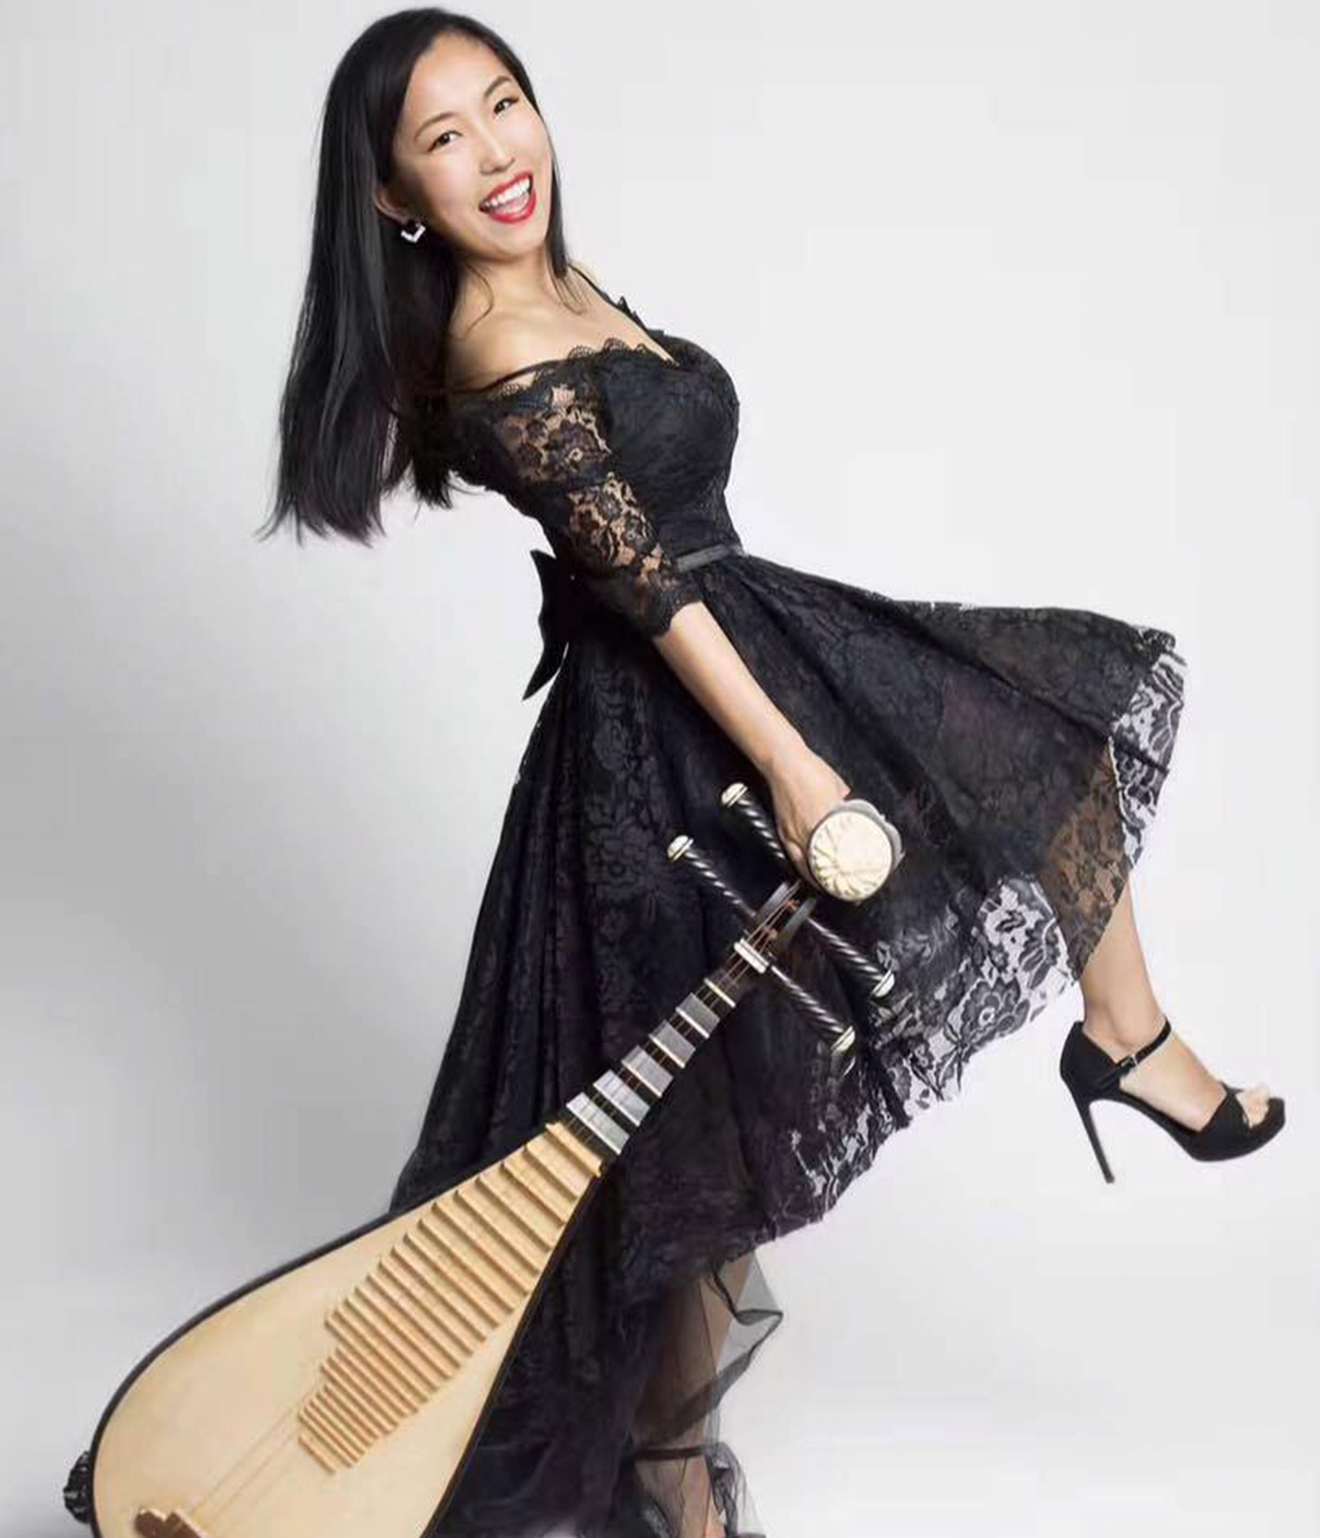 Lu Liu  is an award-winning pipa musician with 20 years of performance experience. She learned to play pipa from Professor Yong Ge of the China Conservatory of Music and is a member of the China Nationalities Orchestra Society. She has earned many accolades, including the Gold Medal in the 2017 New York Chinese Instruments International Competition and the New York Arts Achievement Award. As a member of Chinese Music Ensemble of New York and Chinese Theater Works, she has given performances at Carnegie Hall, Lincoln Center, Merkin Concert Hall,